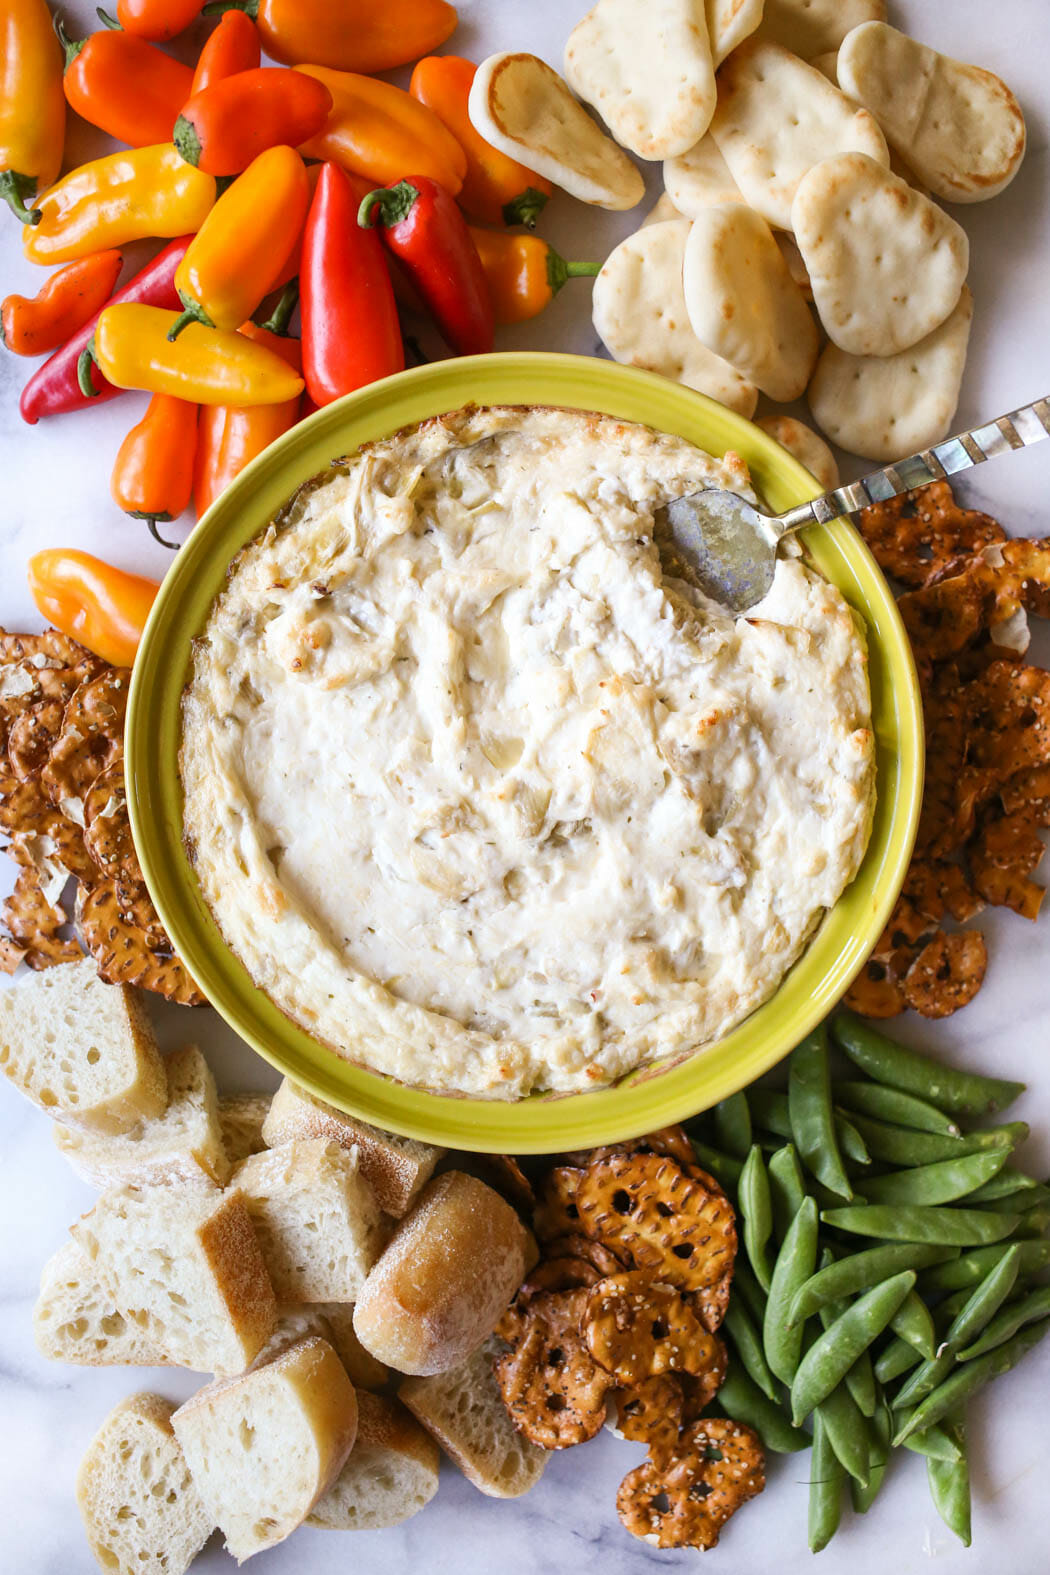 Garlic Artichoke Dip from Our Best Bites